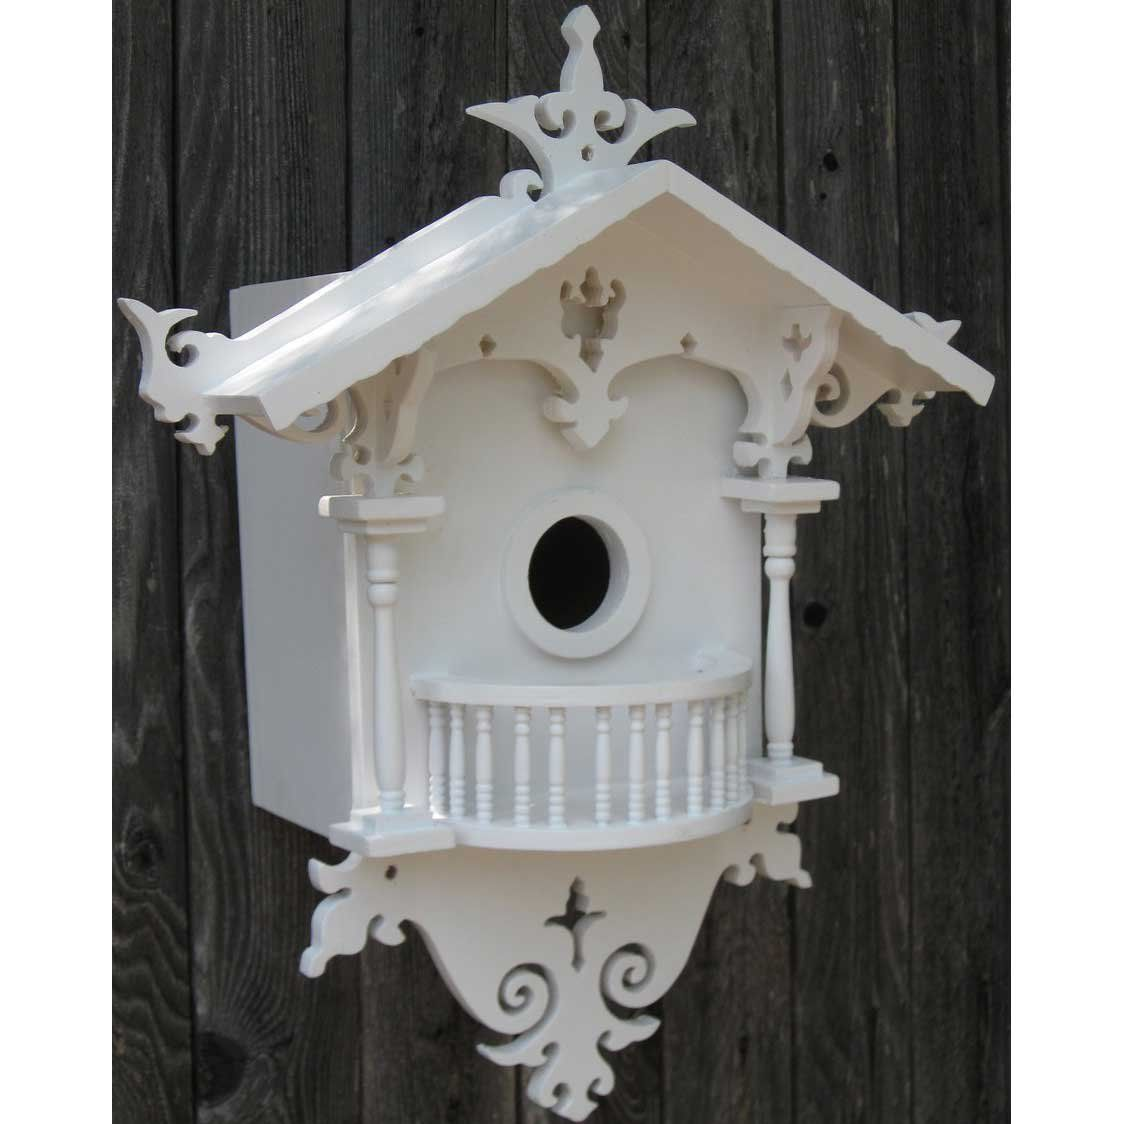 Decorative cuckoo cottage bird house beautiful birds and shelters